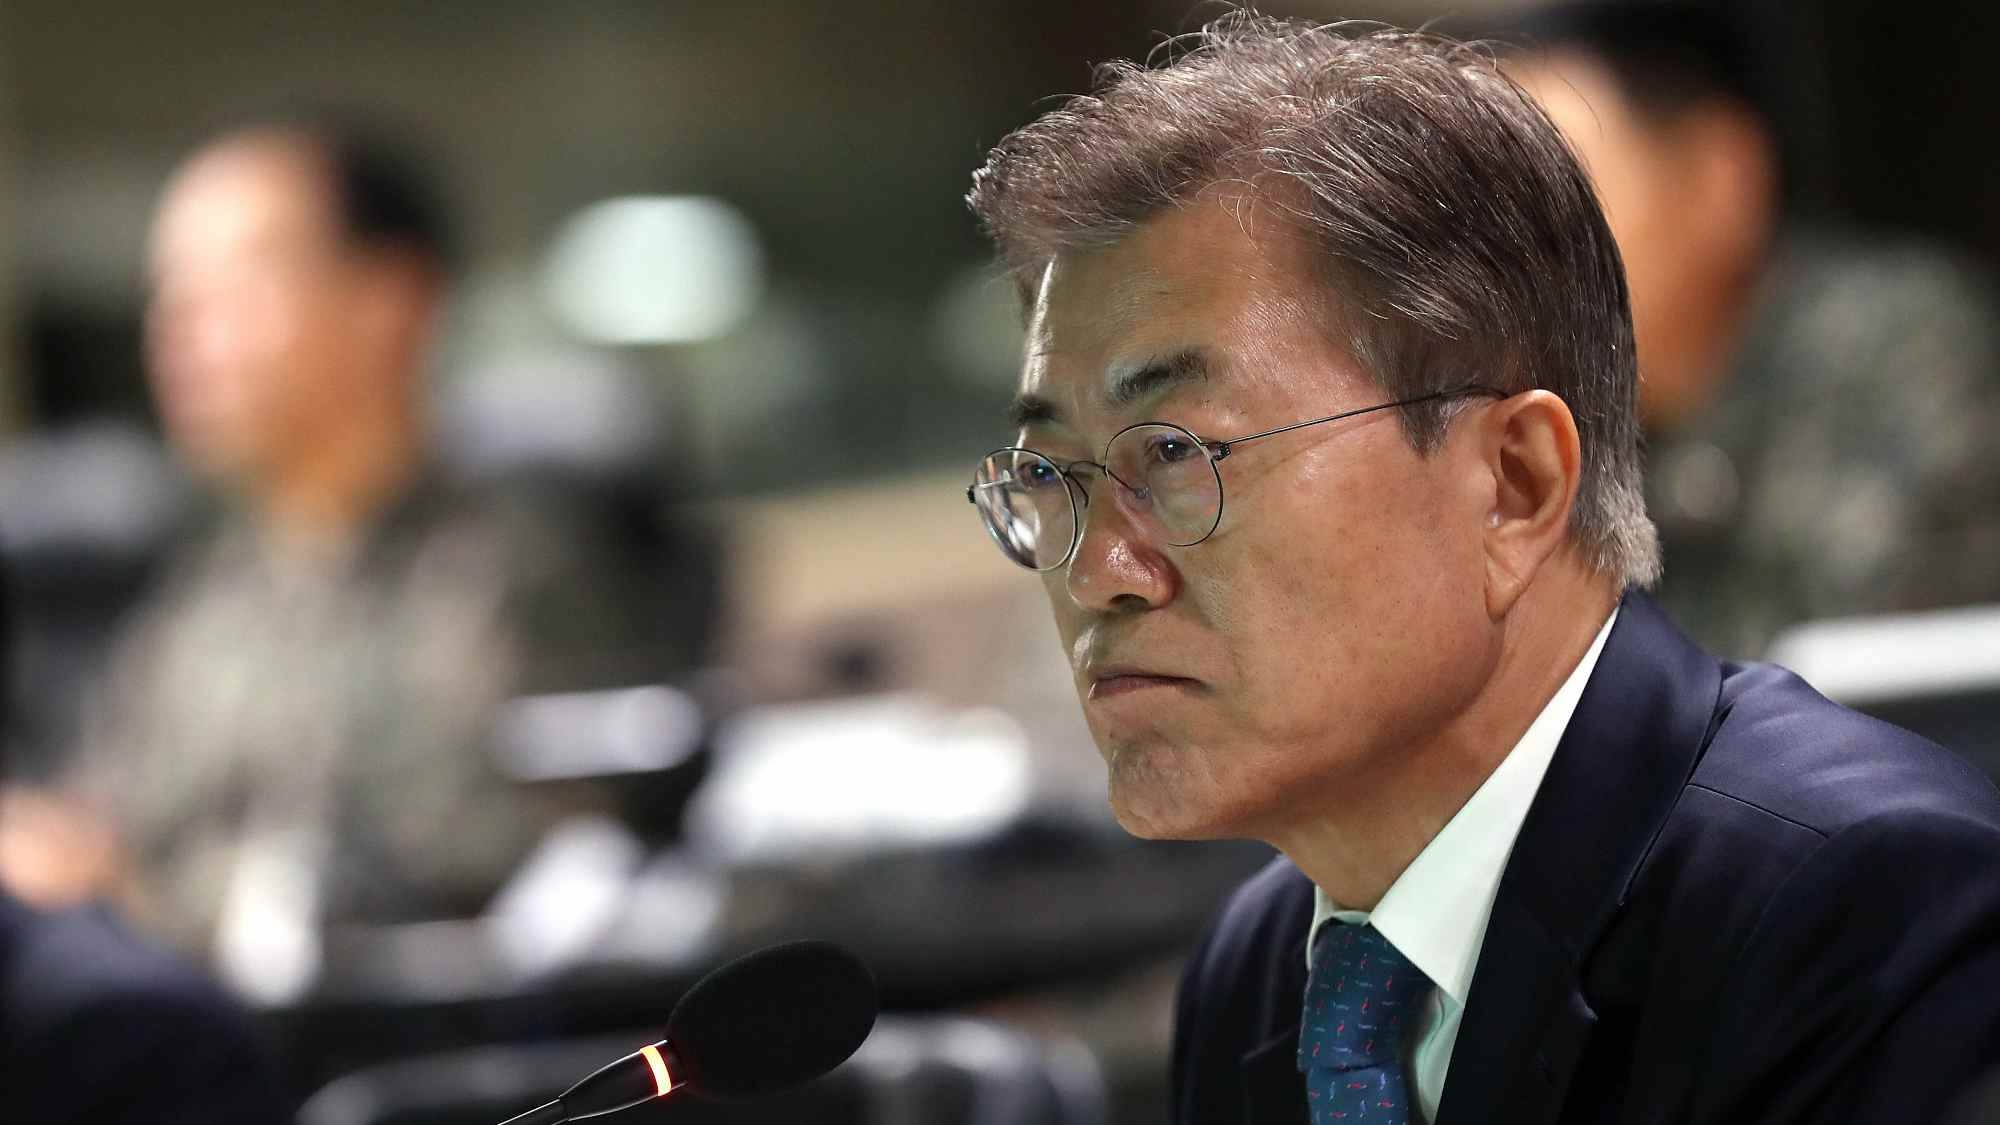 South Korean President Moon Jae-in is facing a stiff challenge from conservative Liberty Korea Party